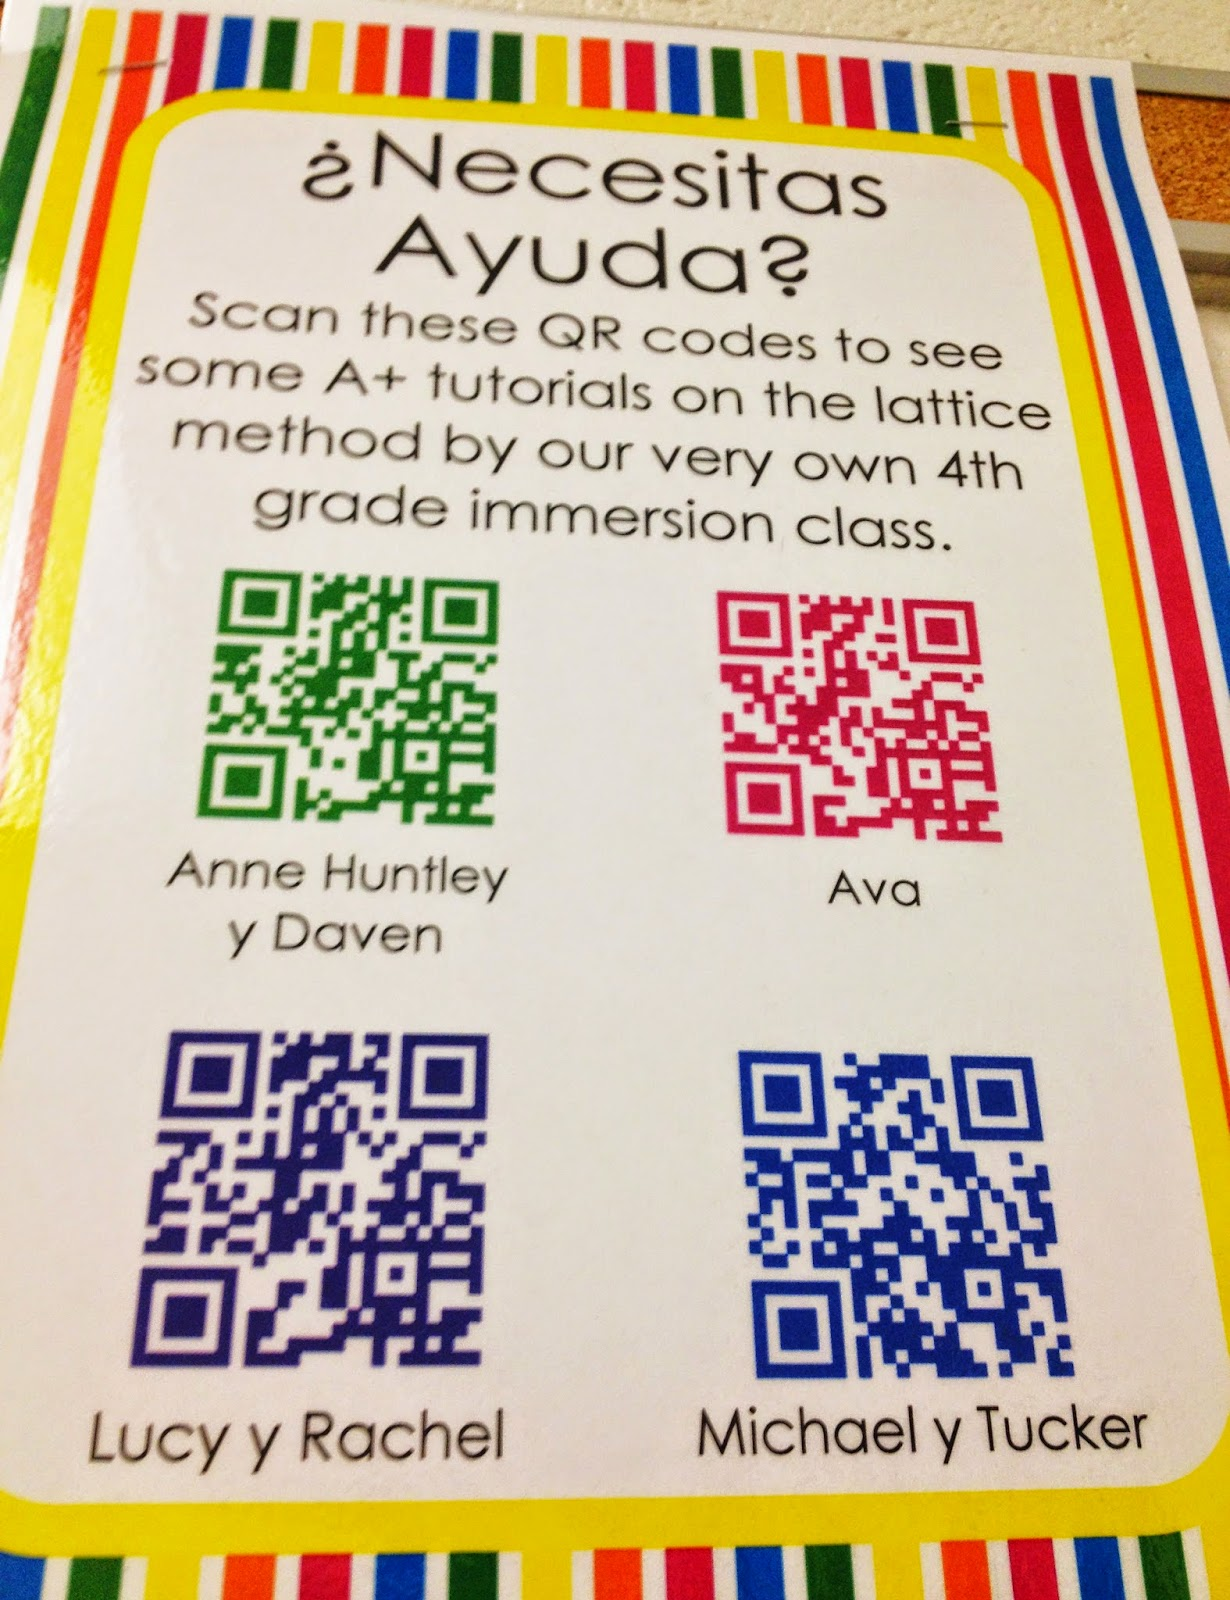 http://www.flapjackeducation.com/2013/09/create-qr-codes-of-student.html